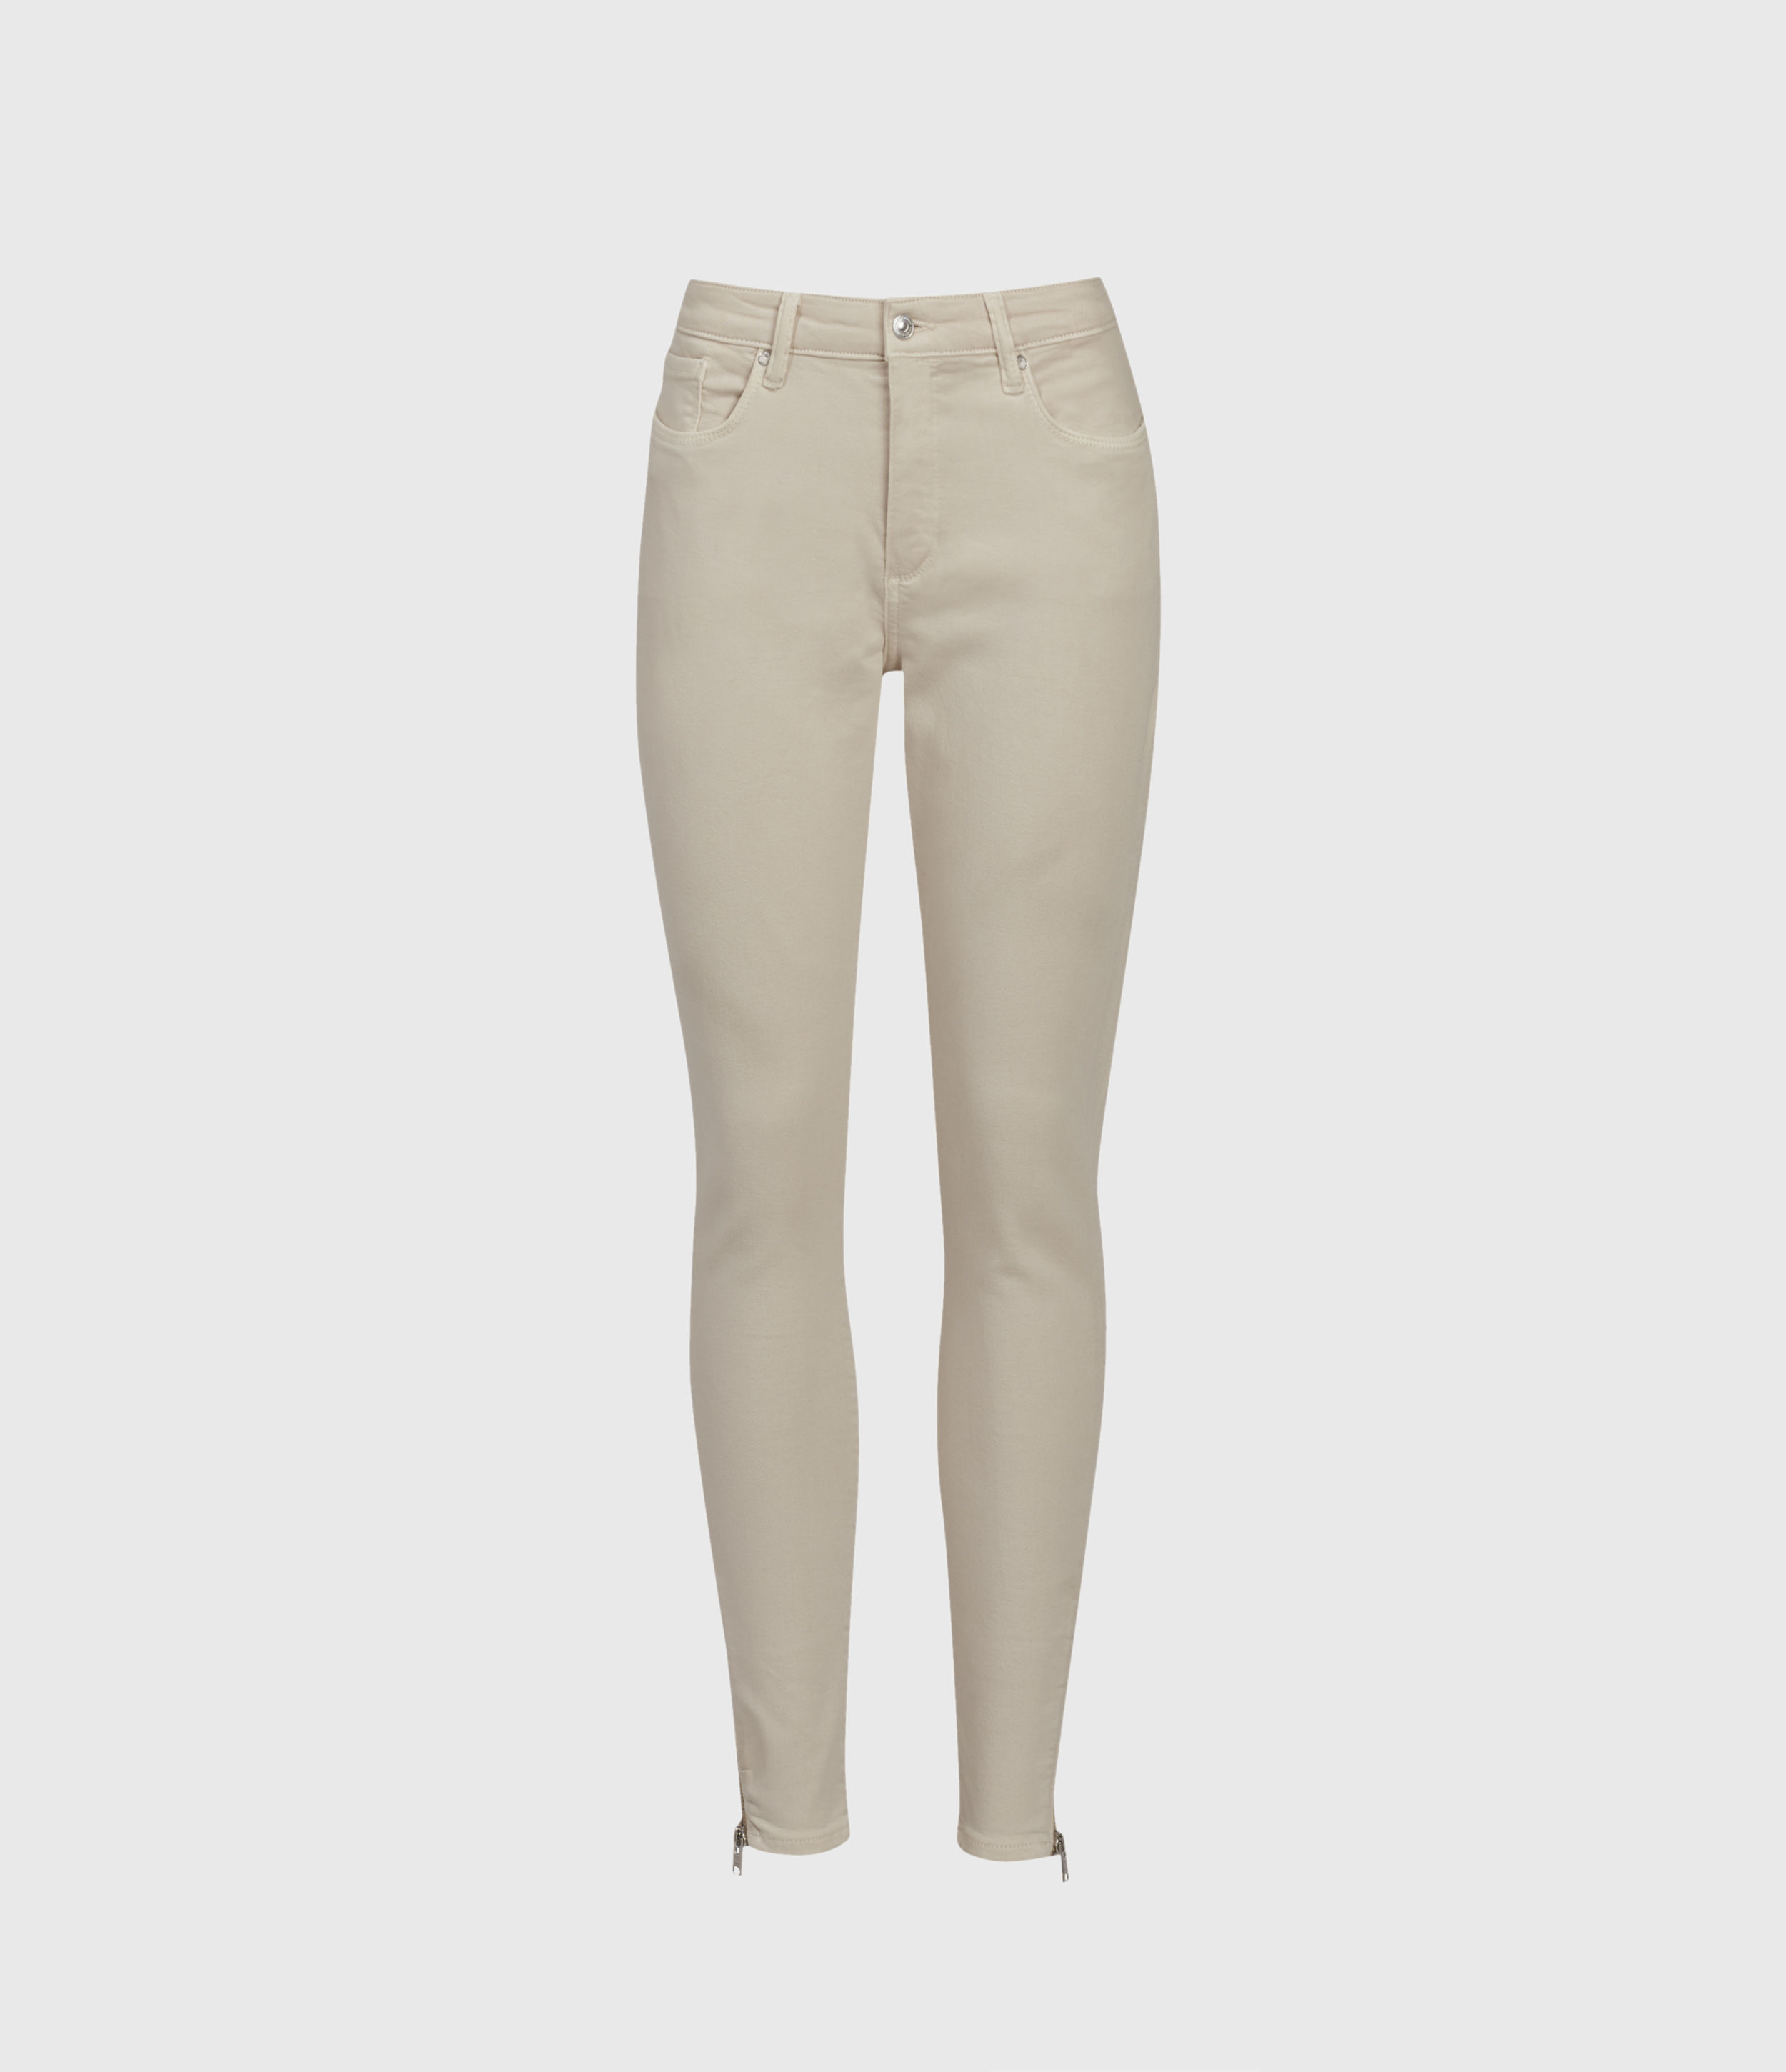 AllSaints Miller Mid-Rise Superstretch Skinny Jeans, Cream